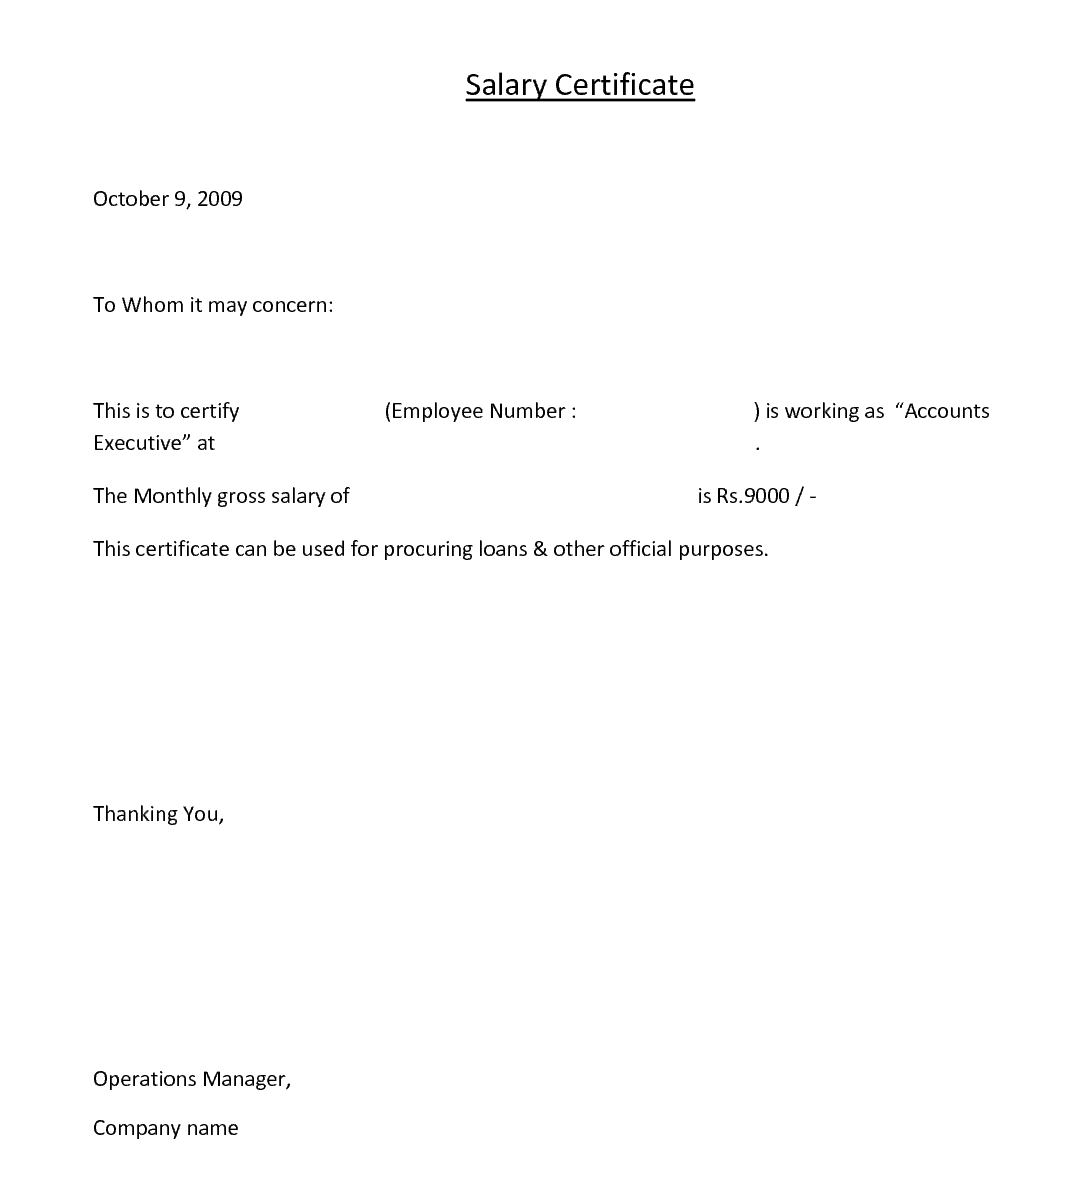 Top 5 resources to get free salary certificate templates word top 5 resources to get free salary certificate templates word templates excel templates xflitez Image collections